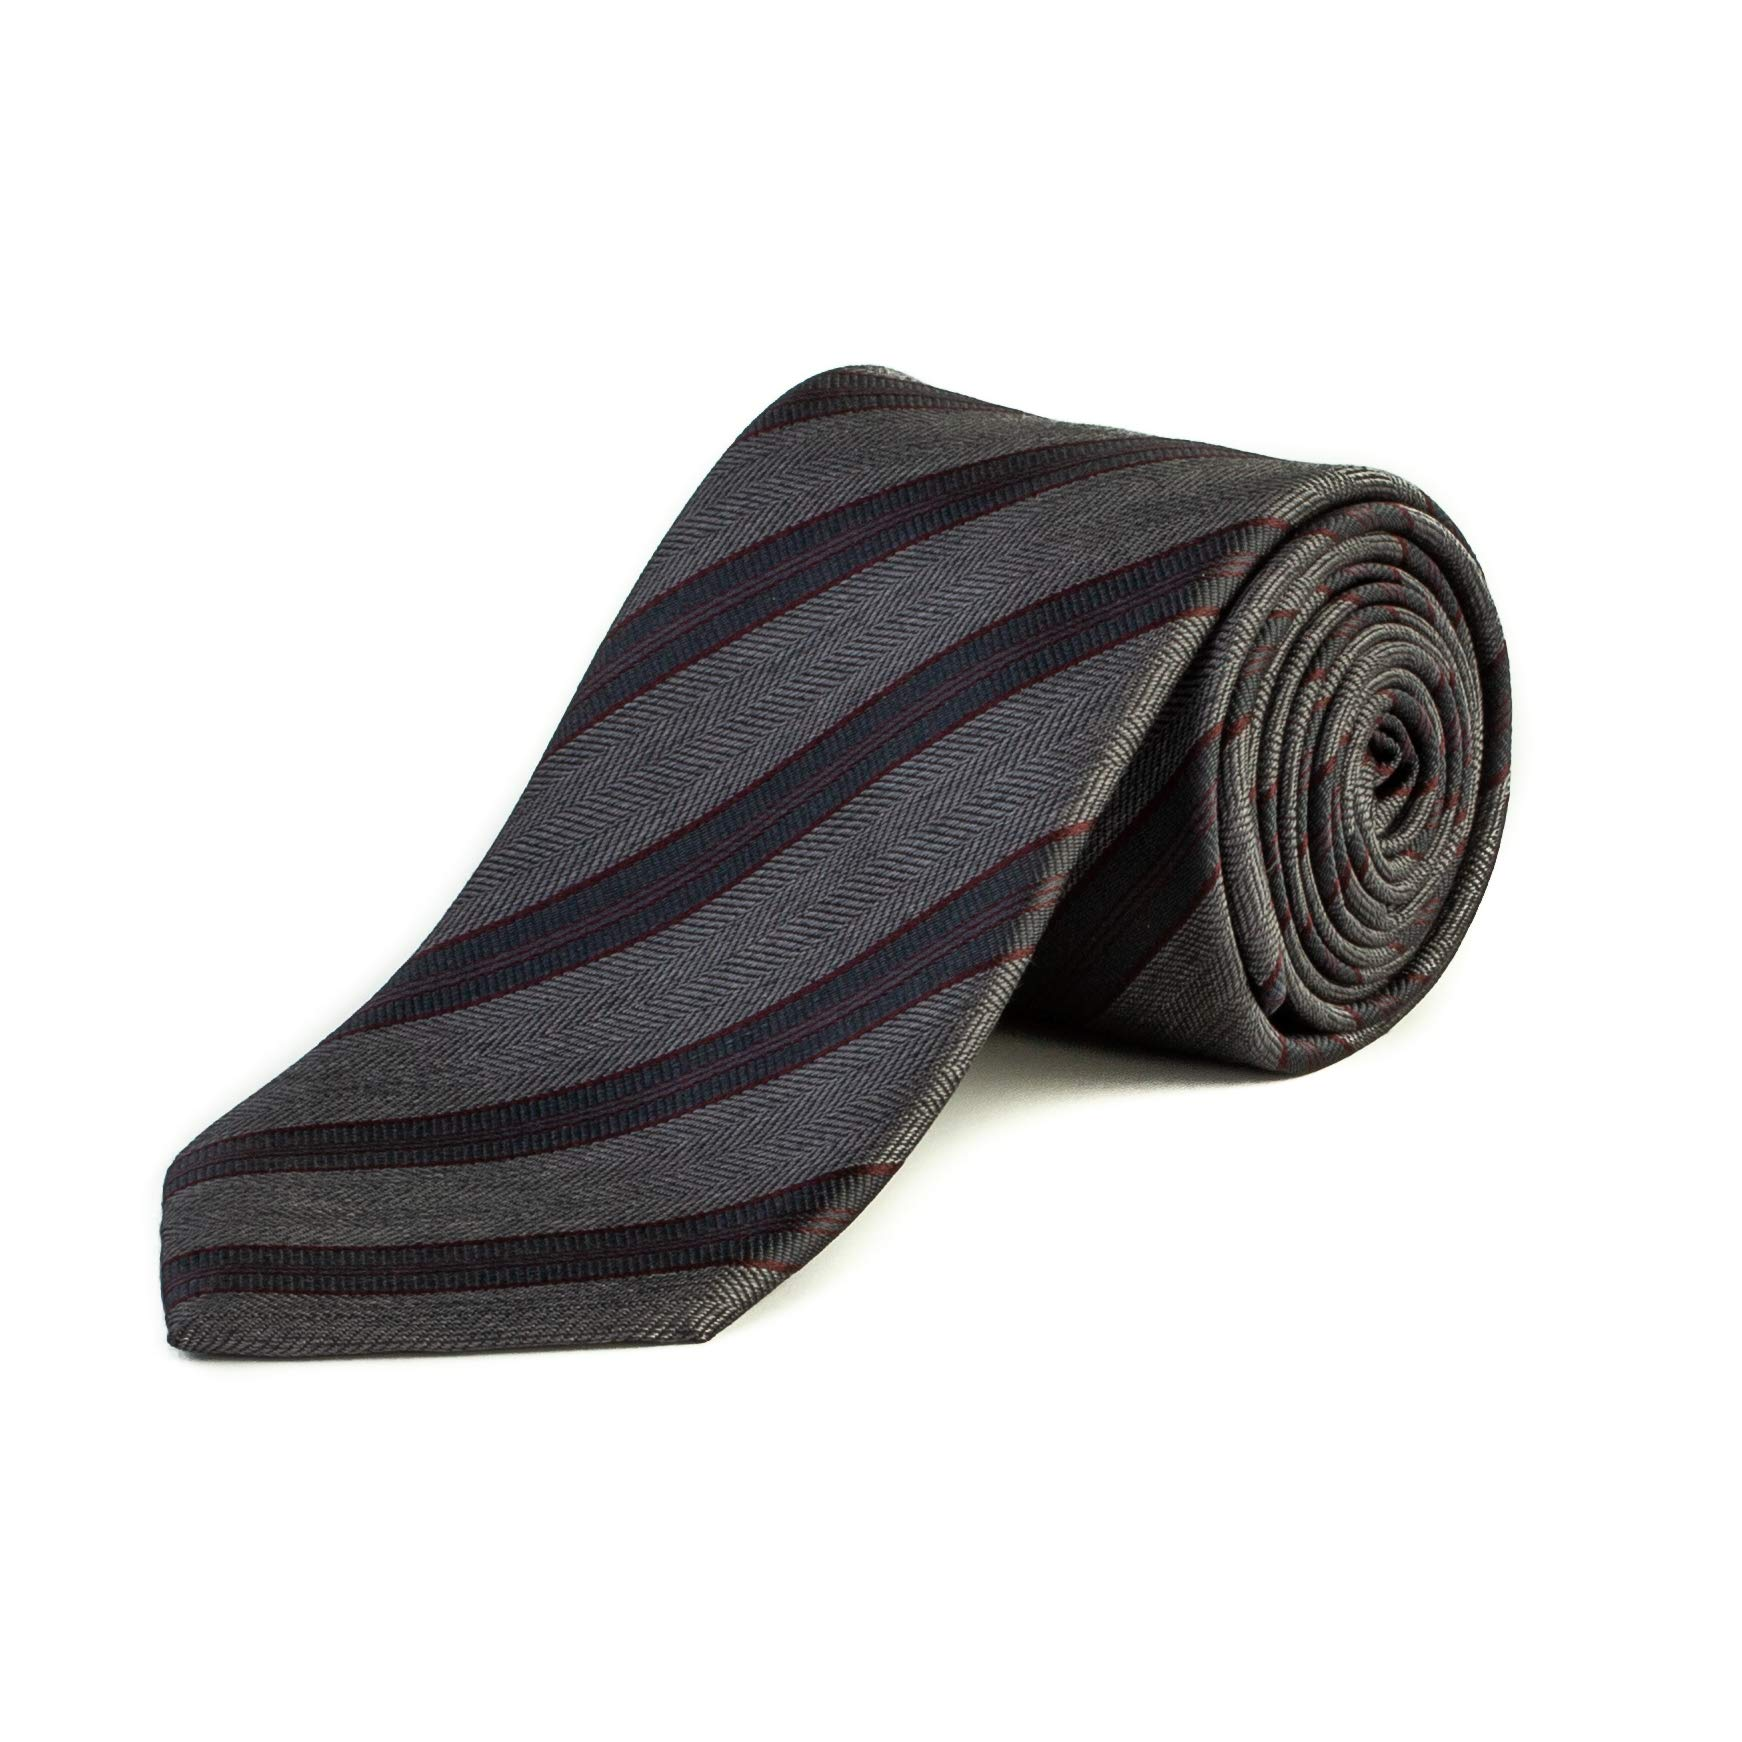 Brioni Men's Wool Striped Pattern Tie Grey/Red